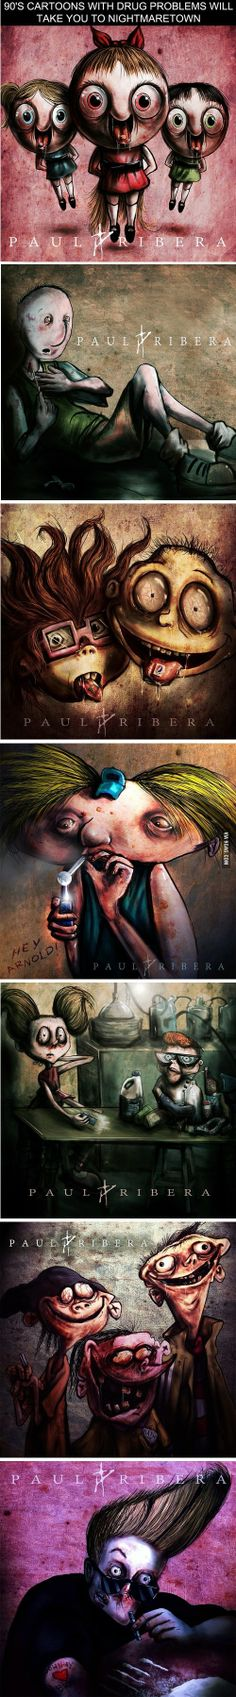 90's Cartoons With Drug Problems Will Take You to Nightmaretown - Just DWL || The Ultimate Trolling